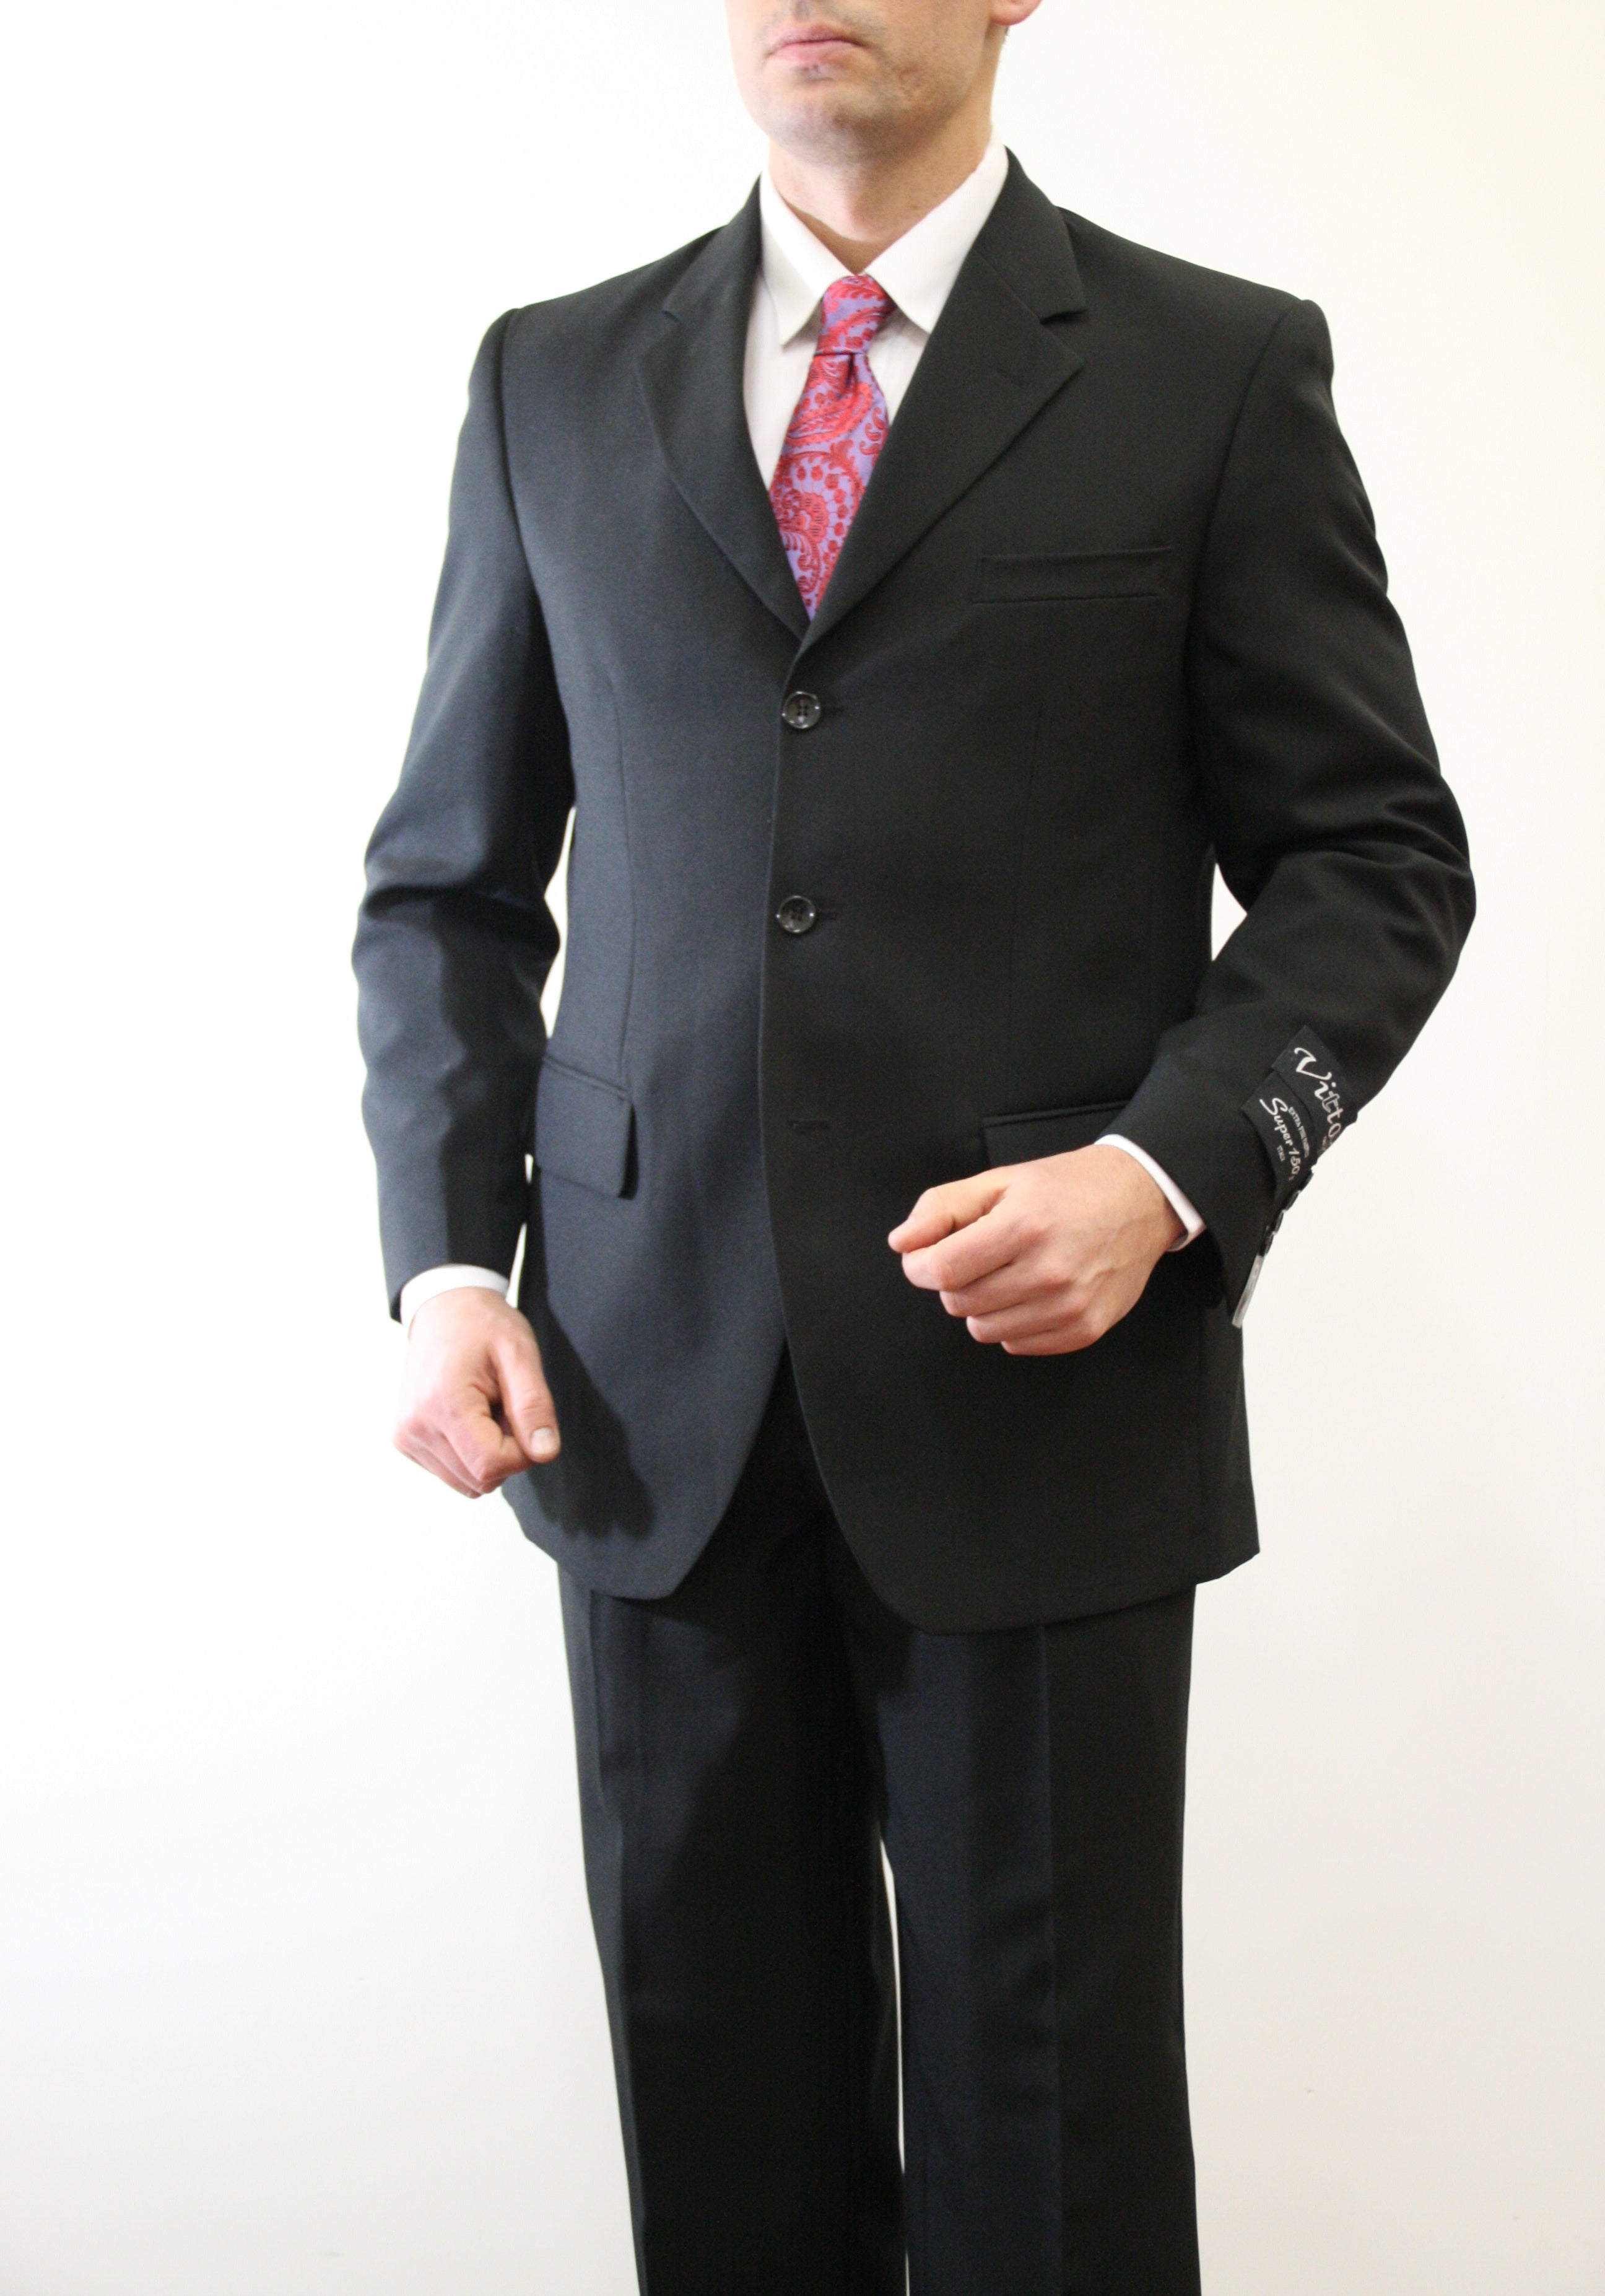 Black Suit For Men Formal Suits For All Ocassions M097-01